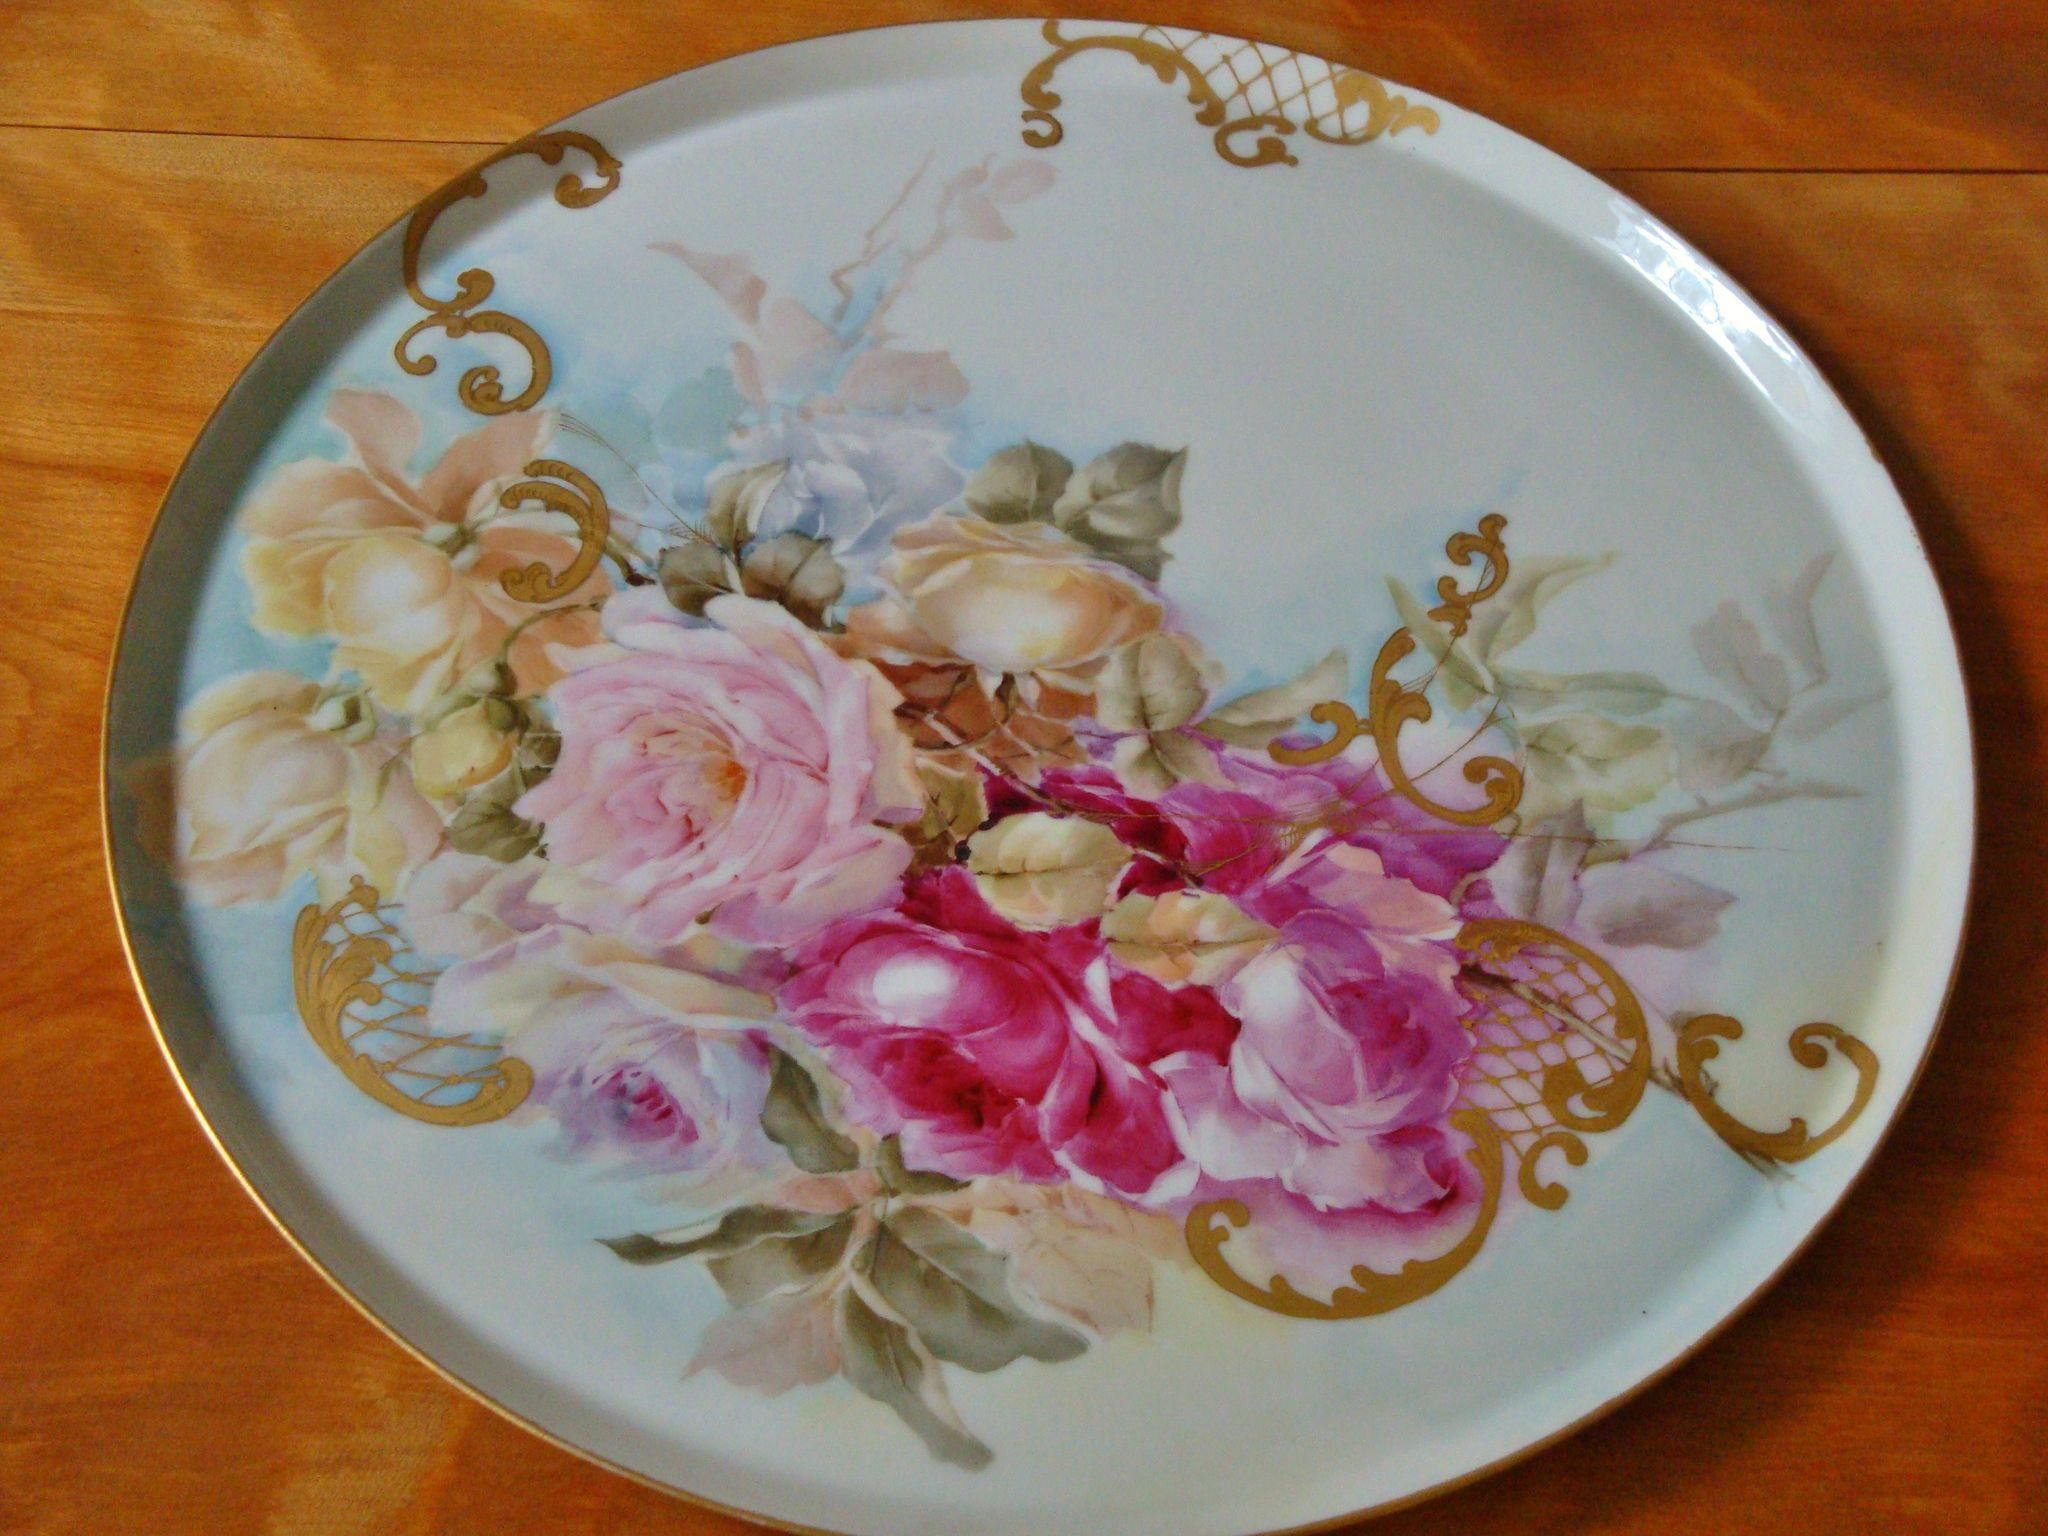 jpl france vase of antique limoges france incredible hand painted porcelain p with regard to beautiful limoges france hand painted porcelain french tray plaque for jardiniere punch bowl or vase